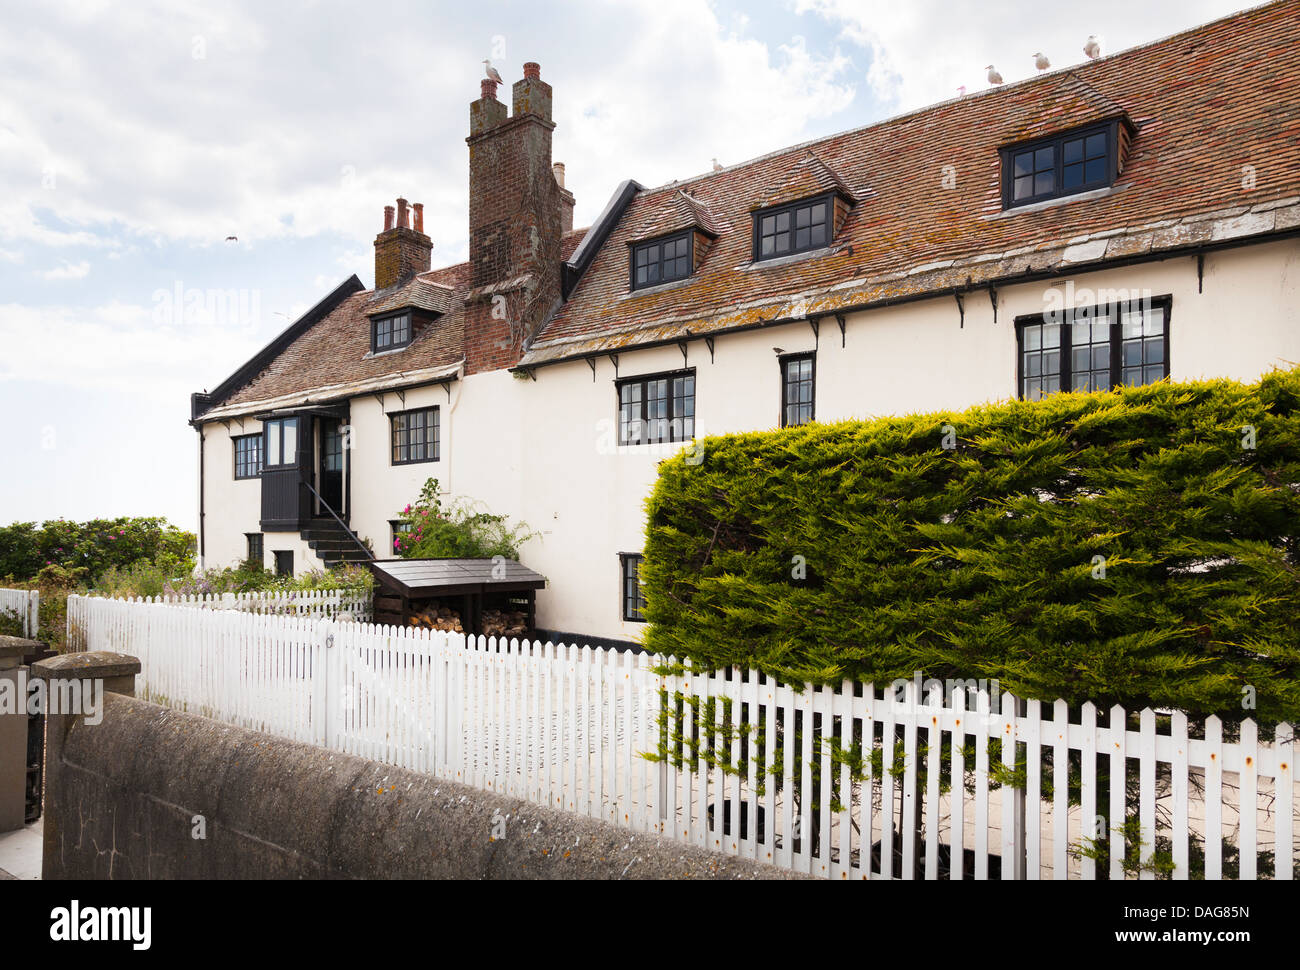 Old Customs House cottages at Mudeford Quay - Stock Image